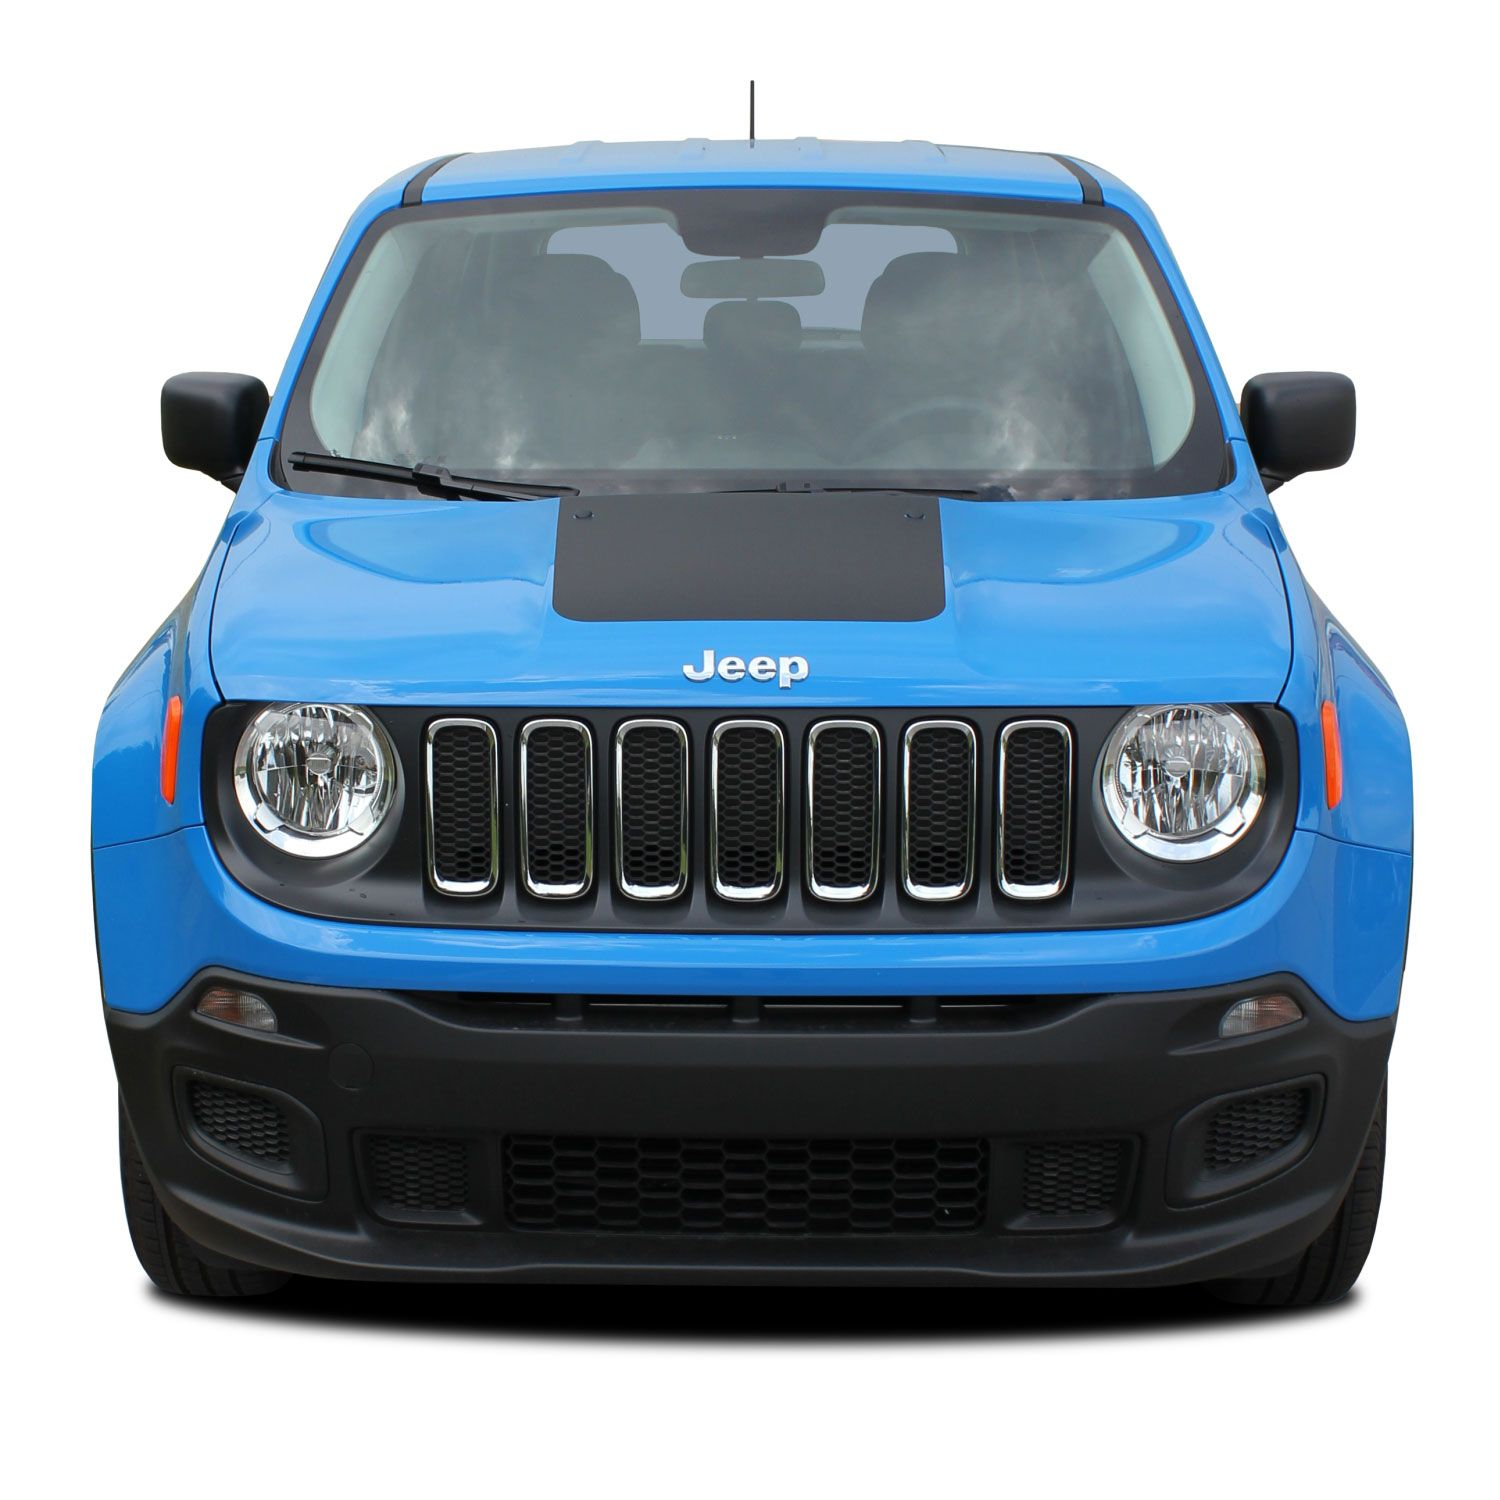 Jeep Renegade Trailhawk For Sale >> 2014-2020 Jeep Renegade HOOD Decal Trailhawk Style Vinyl ...